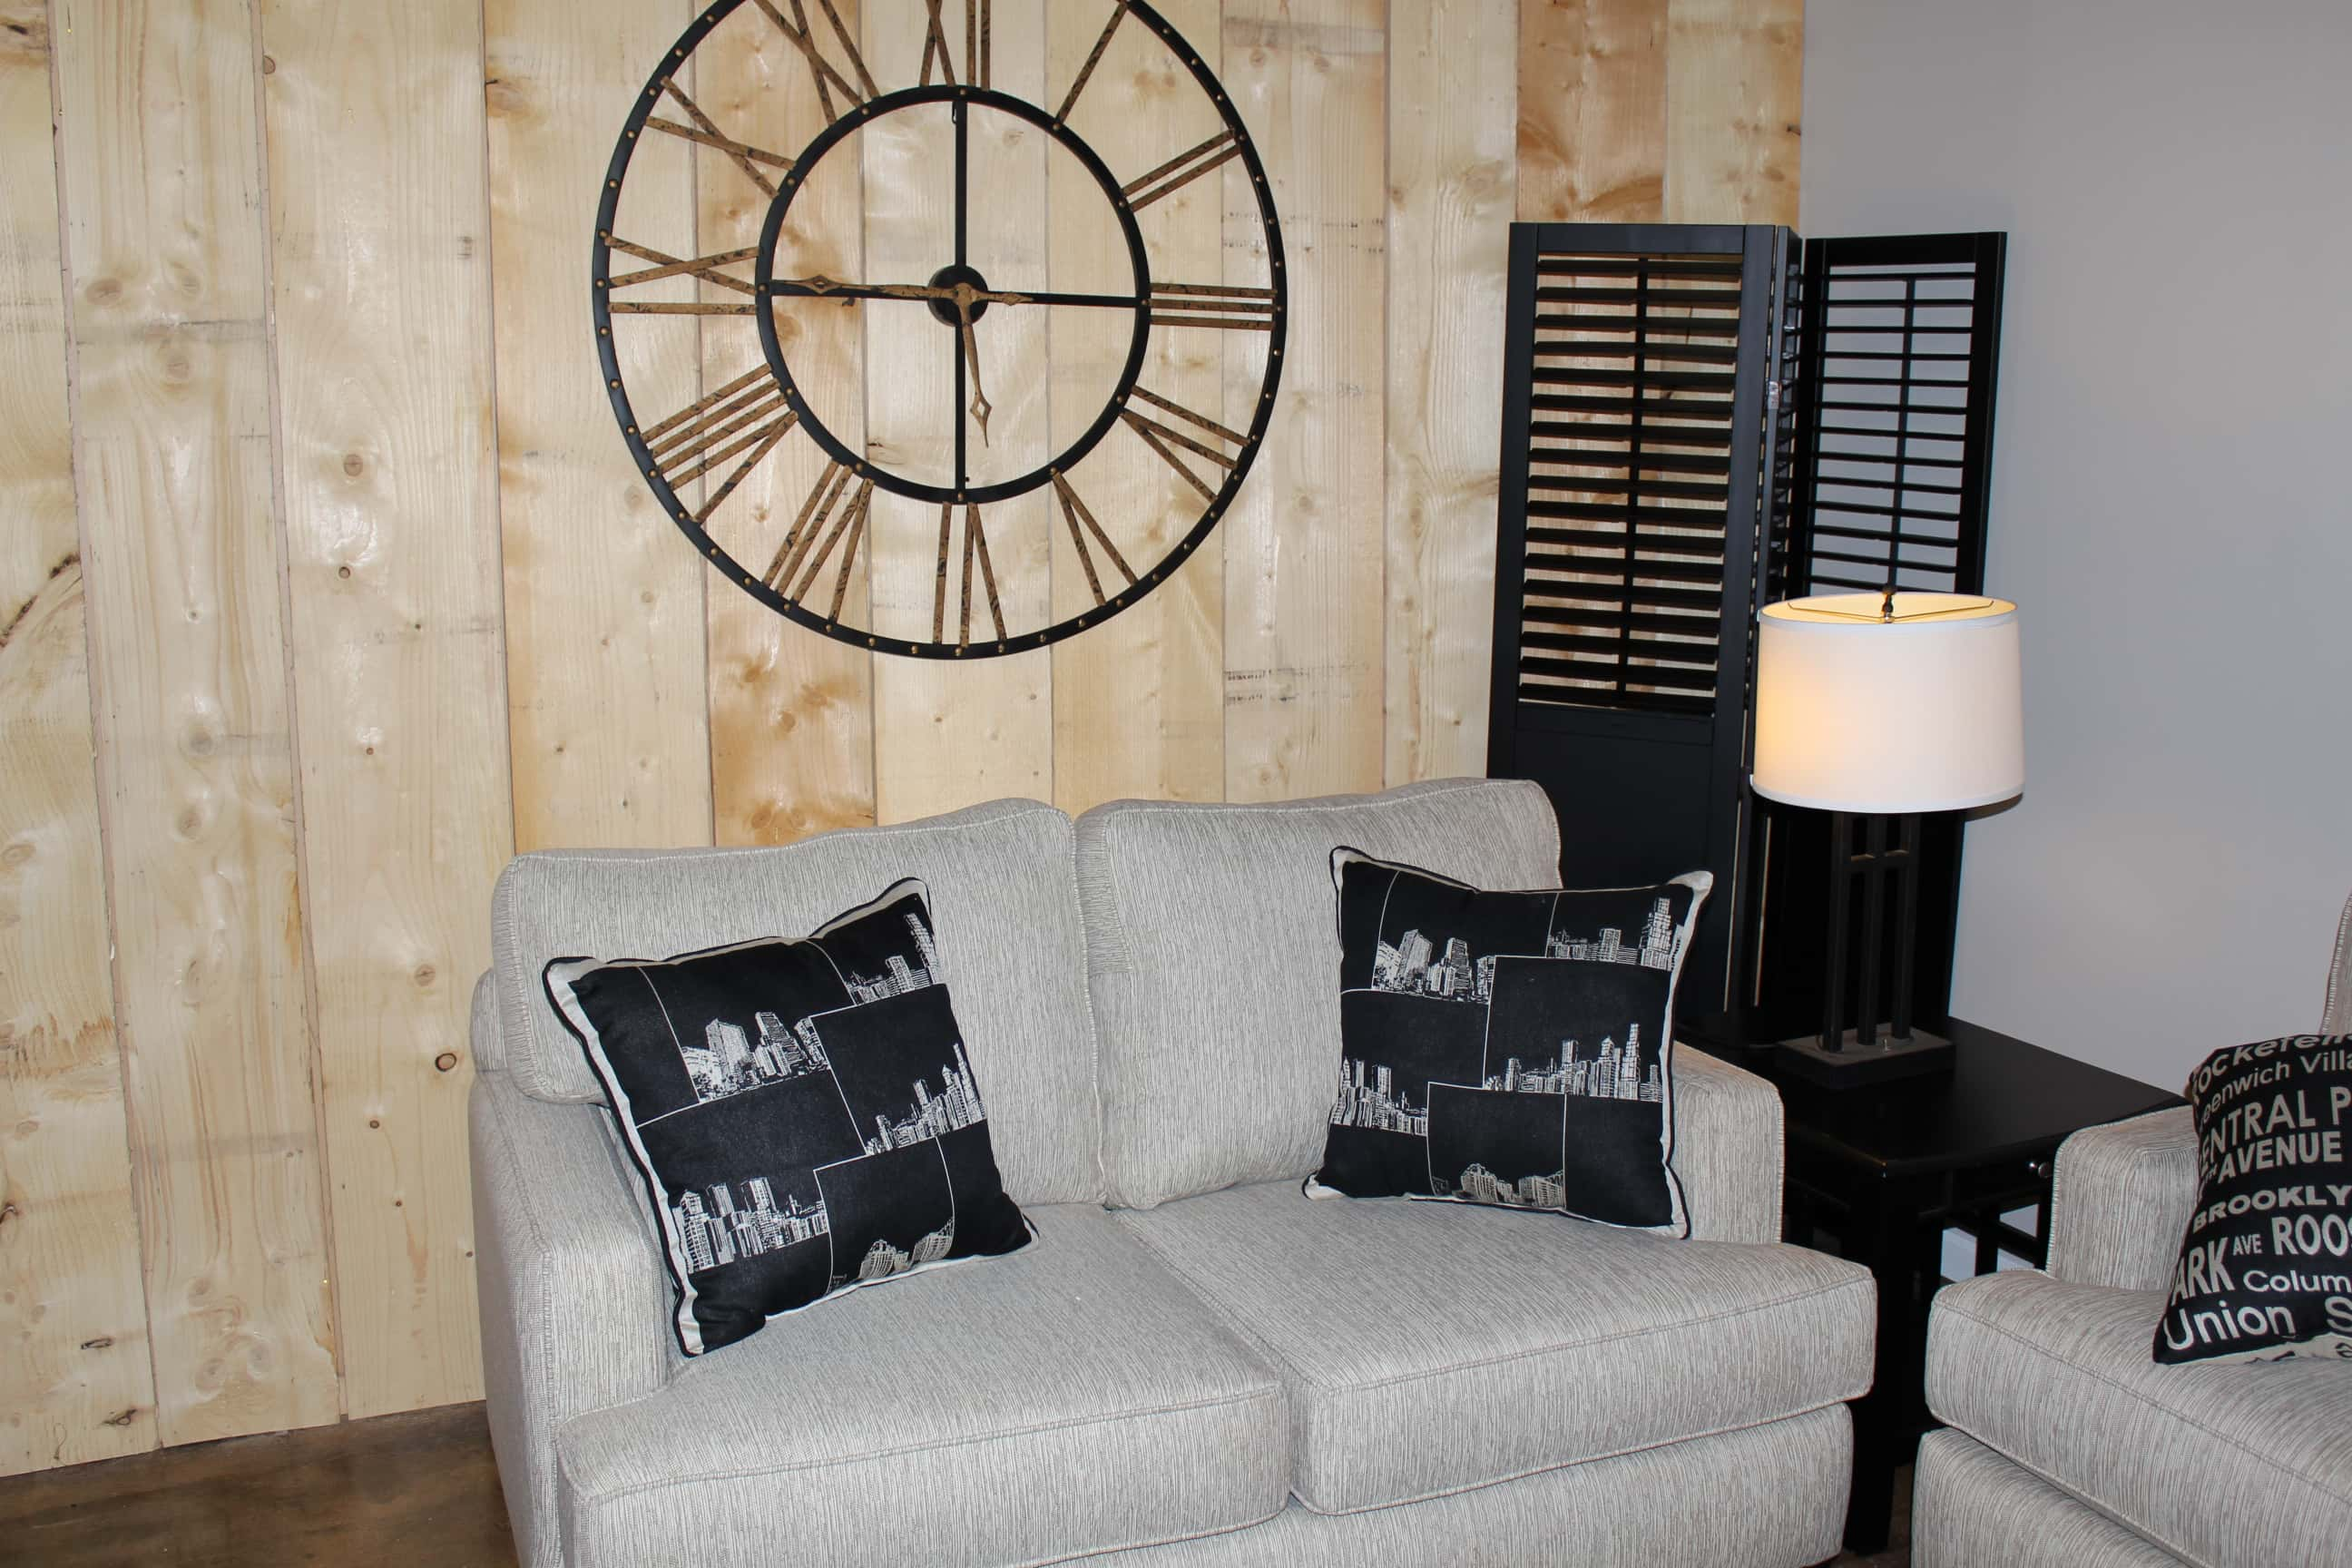 Previously used furniture can be high-quality and affordable